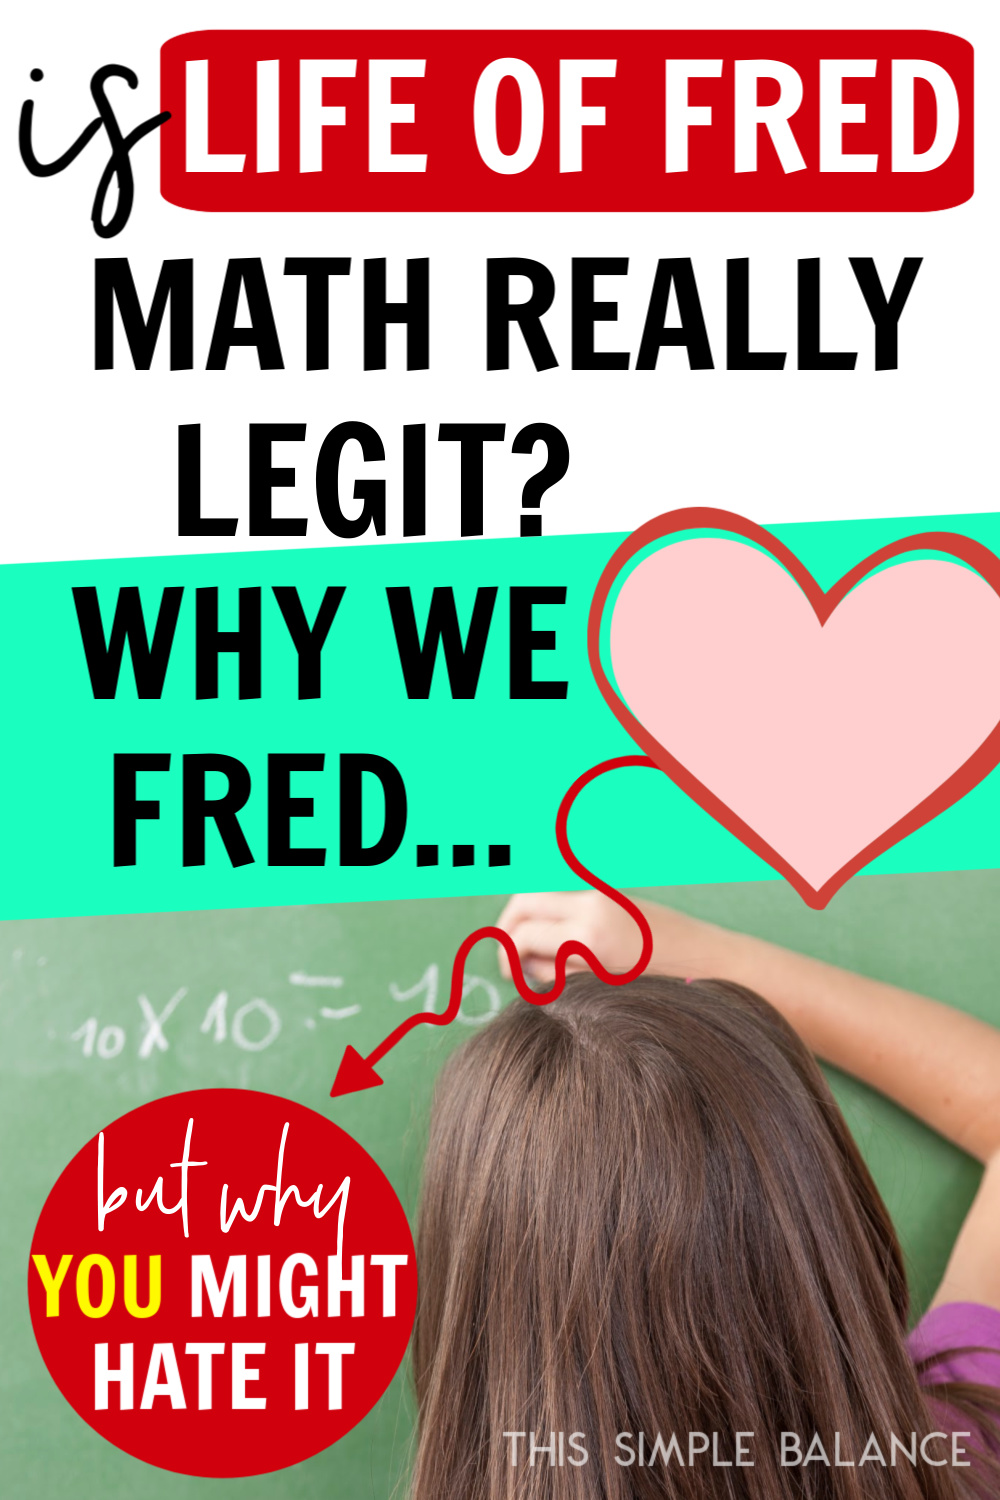 Life of Fred reviews can be so polarized - people either love Life of Fred math or hate it. Get an honest review from a homeschool mom who loves it, but also offers insightful reasons why it might not work for you.